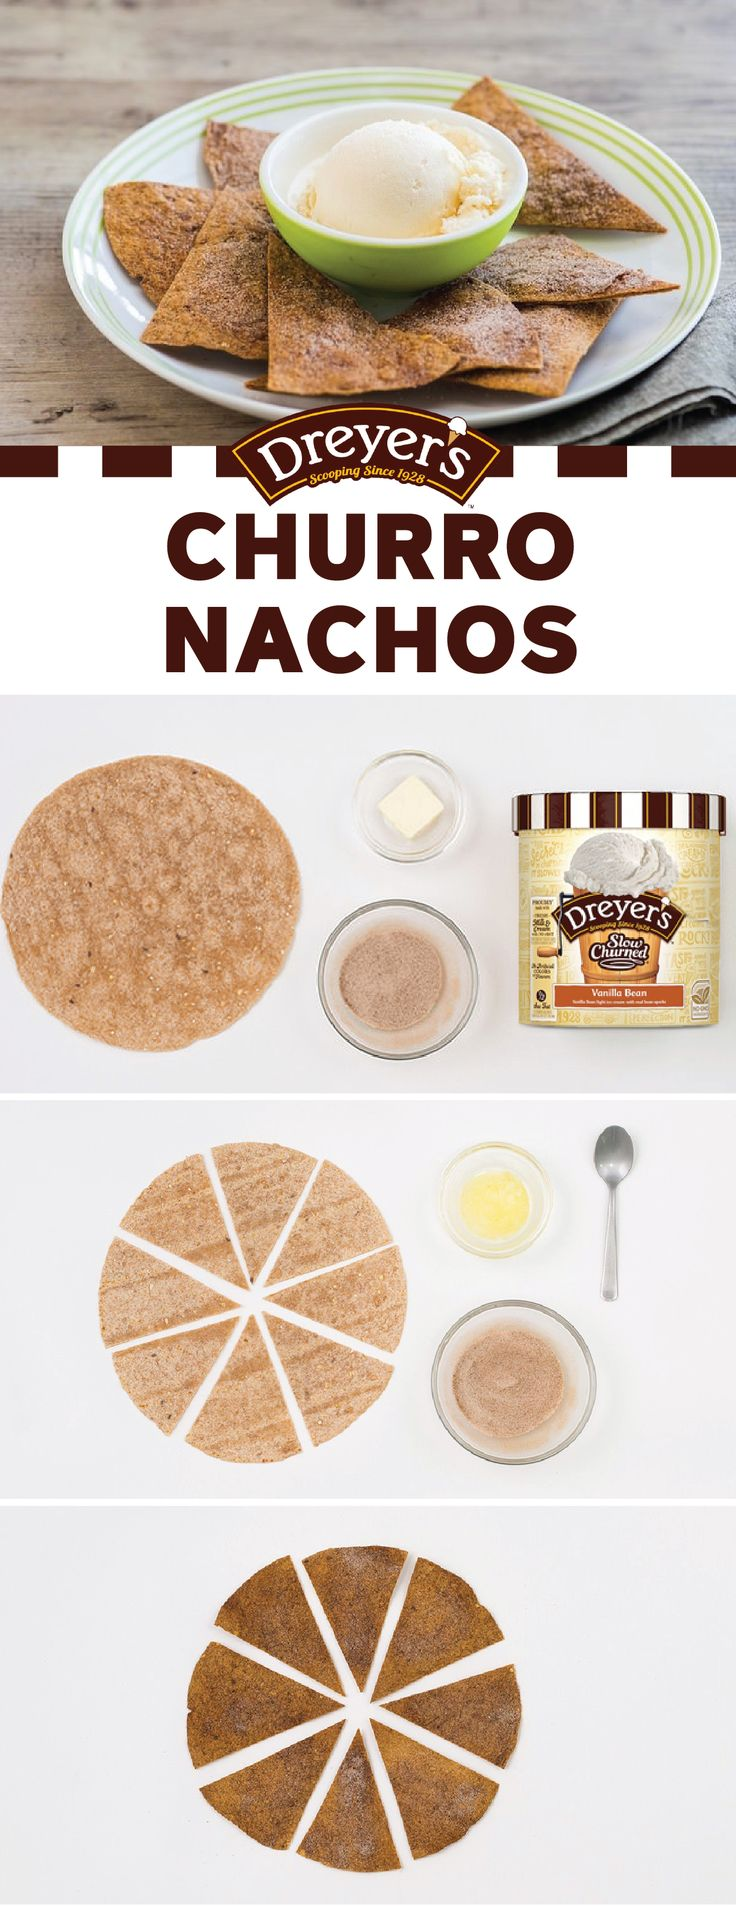 Add a little spice to your life with this DIY Churro Nachos recipe. Cut up a tortilla into small triangles and coat it in cinnamon sugar. Then, fill a small bowl with a scoop of Dreyer's Slow ChurnedⓇ Vanilla Bean light ice cream. This yummy dessert has tons of great flavor with none of the artificial flavoring thanks to Dreyer's Slow ChurnedⓇ light ice cream.